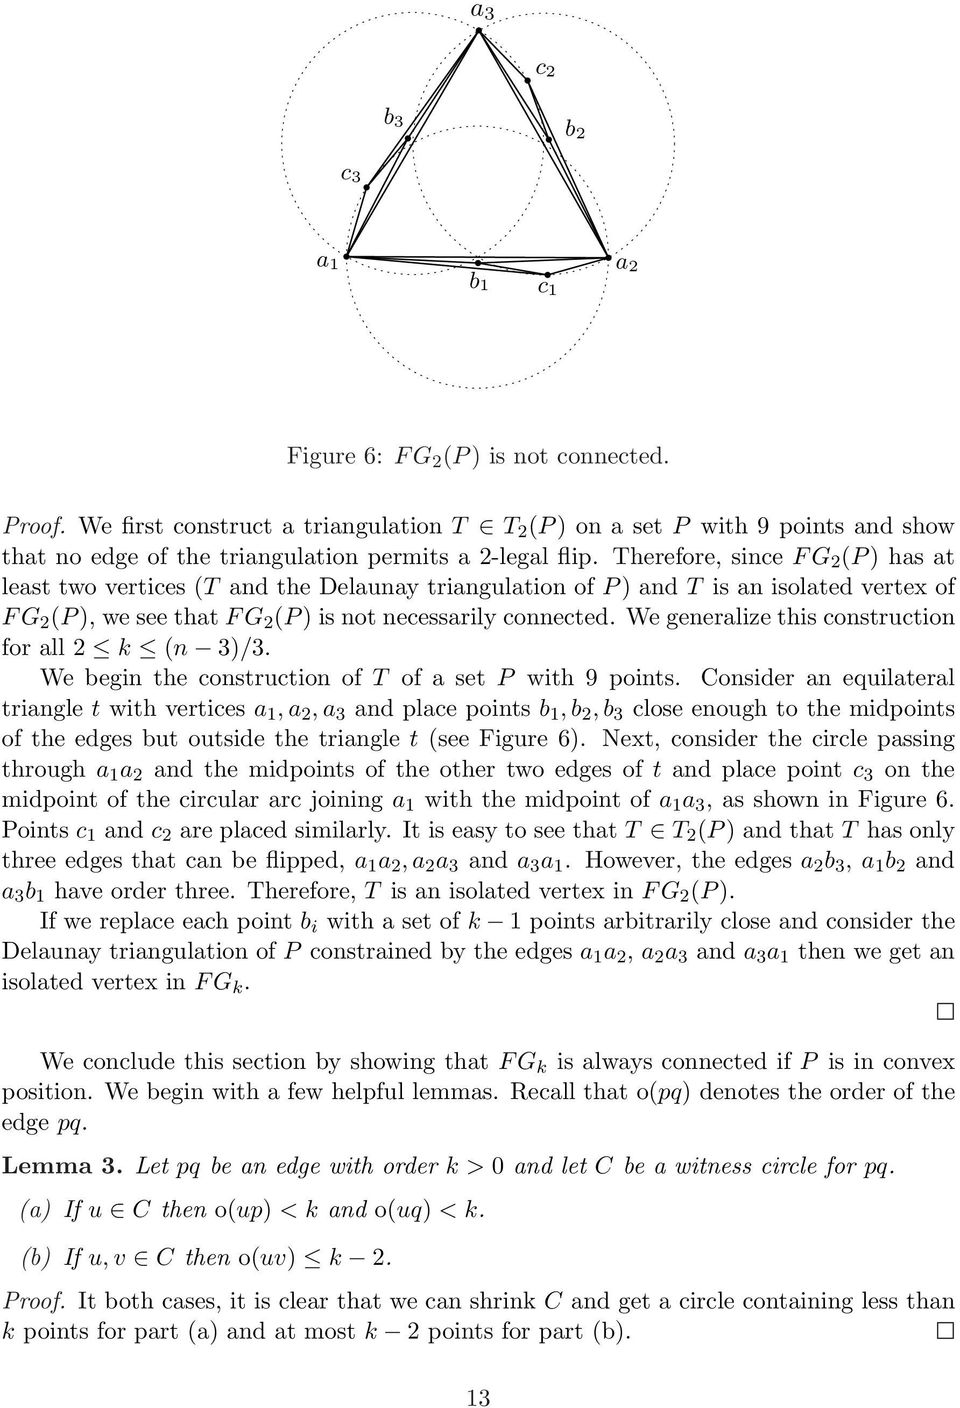 Therefore, since F G 2 (P ) has at least two vertices (T and the Delaunay triangulation of P ) and T is an isolated vertex of F G 2 (P ), we see that F G 2 (P ) is not necessarily connected.